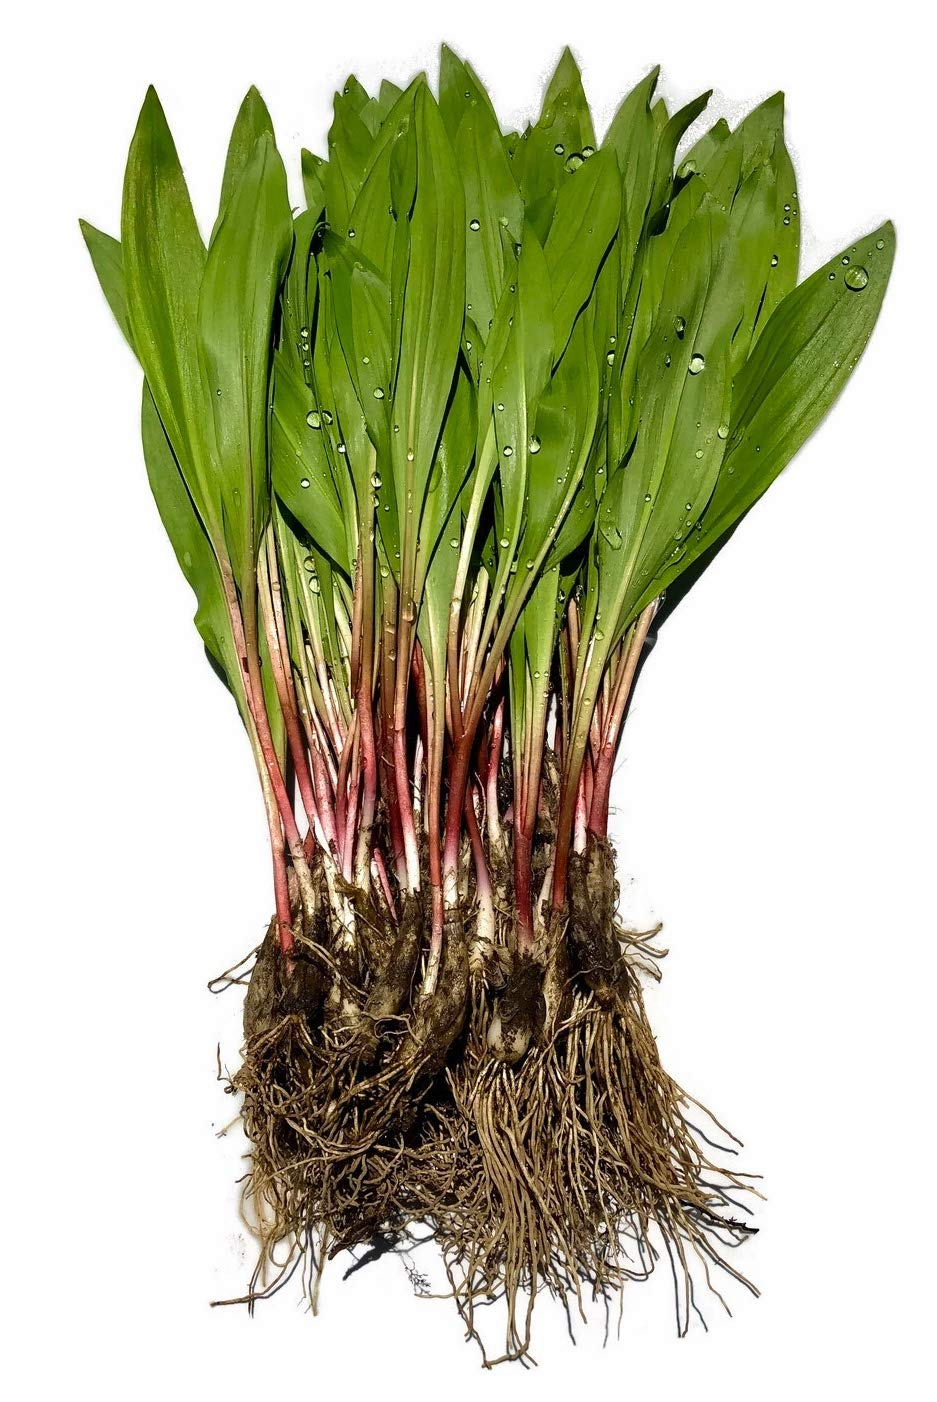 40 FRESH Wild Ramps / Leeks for cooking or replanting by The Wild Leek (Image #2)